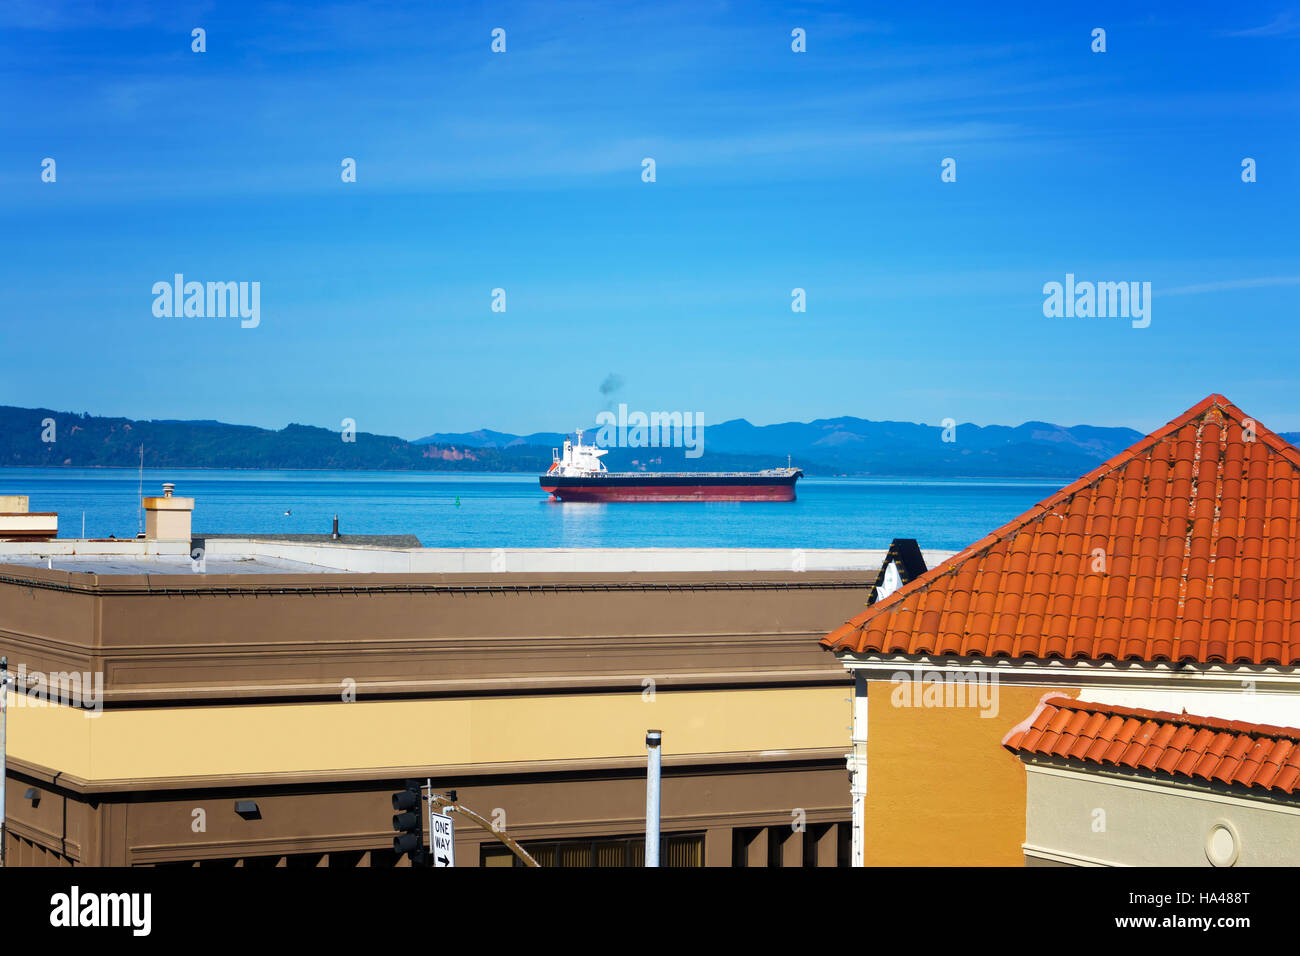 View of Astoria, Oregon, the Columbia River, and a tanker - Stock Image